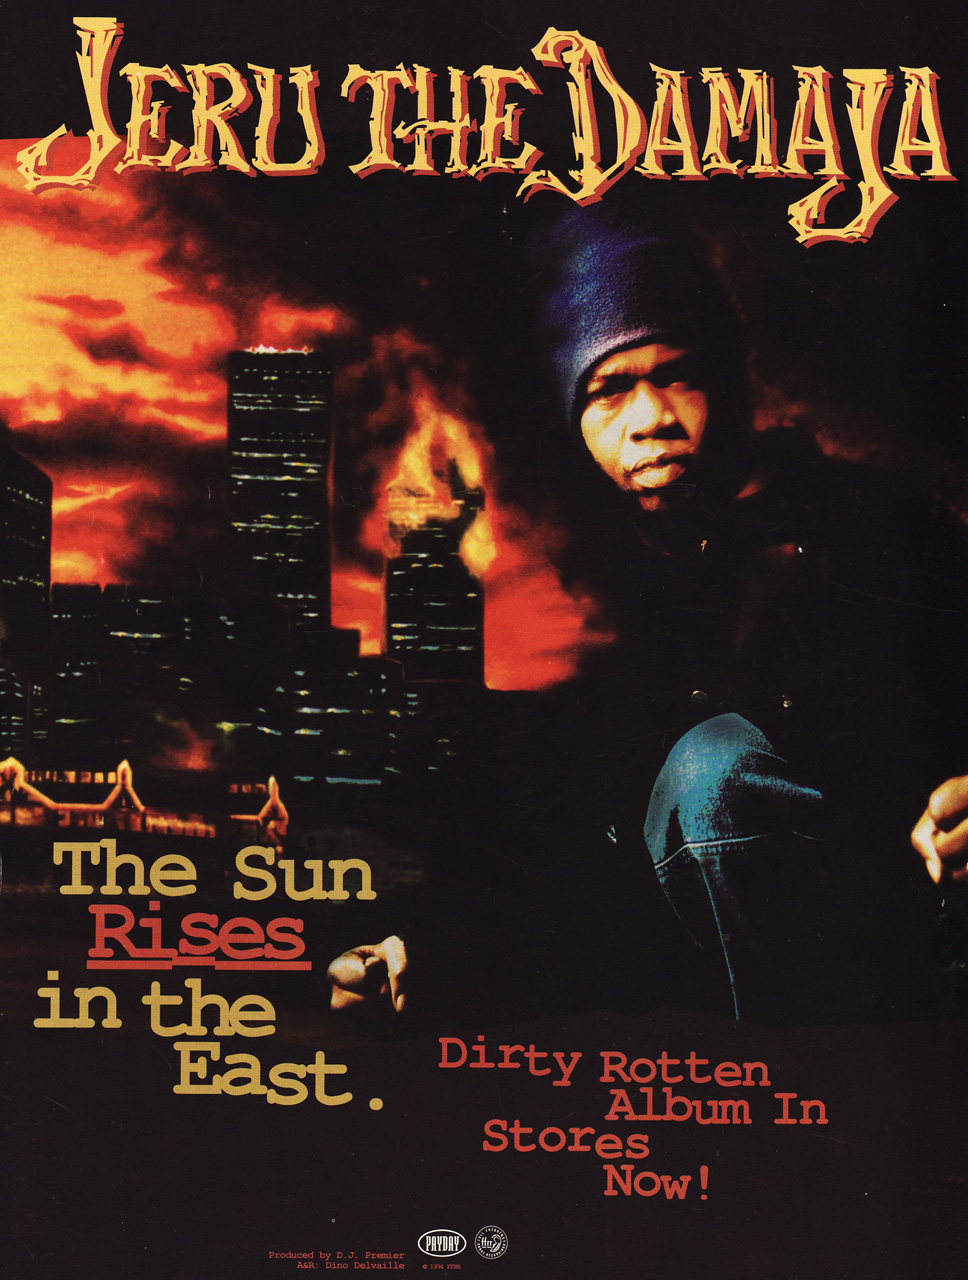 Hiphop Thegoldenera Album Review Jeru The Damaja The